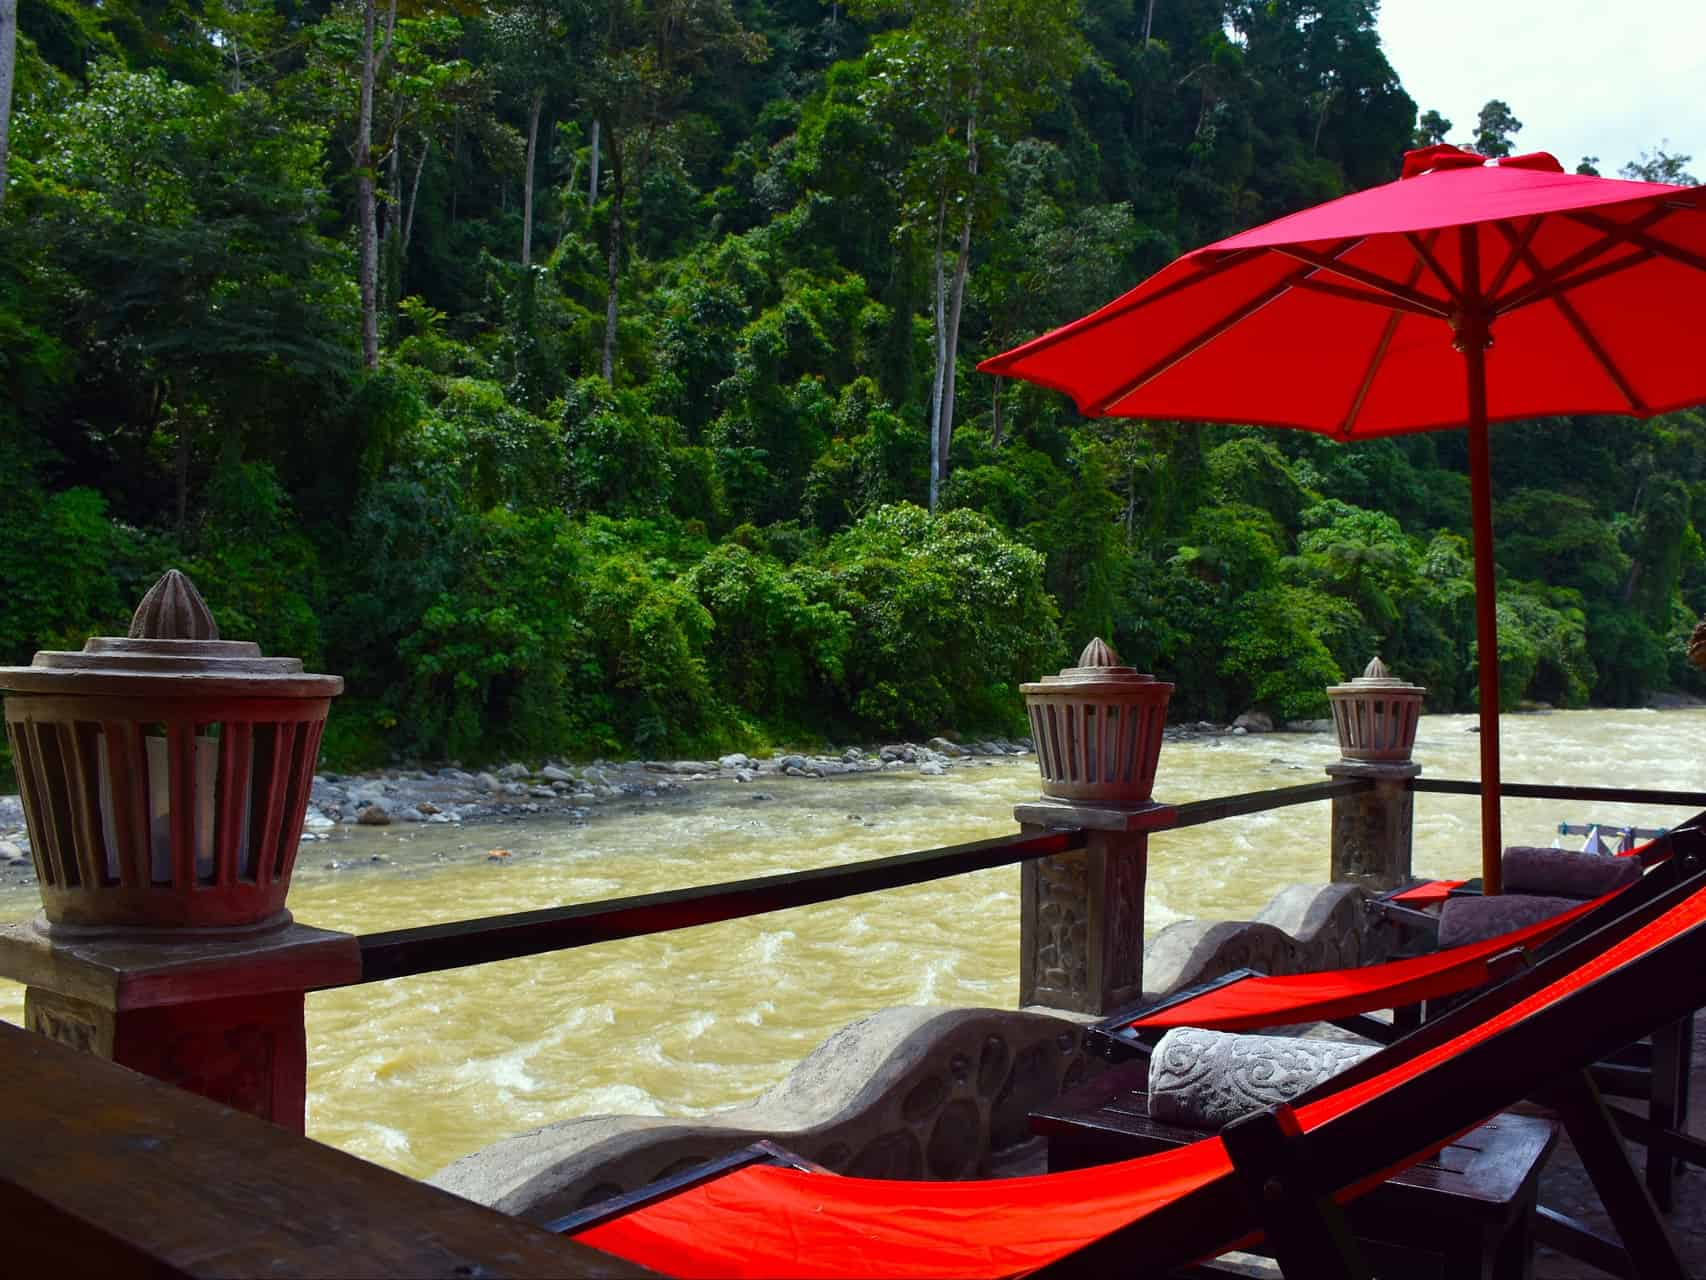 SUN TERRASSE AT ECOTRAVEL COTTAGES BUKIT LAWANG - SUMATRA ECOTRAVEL